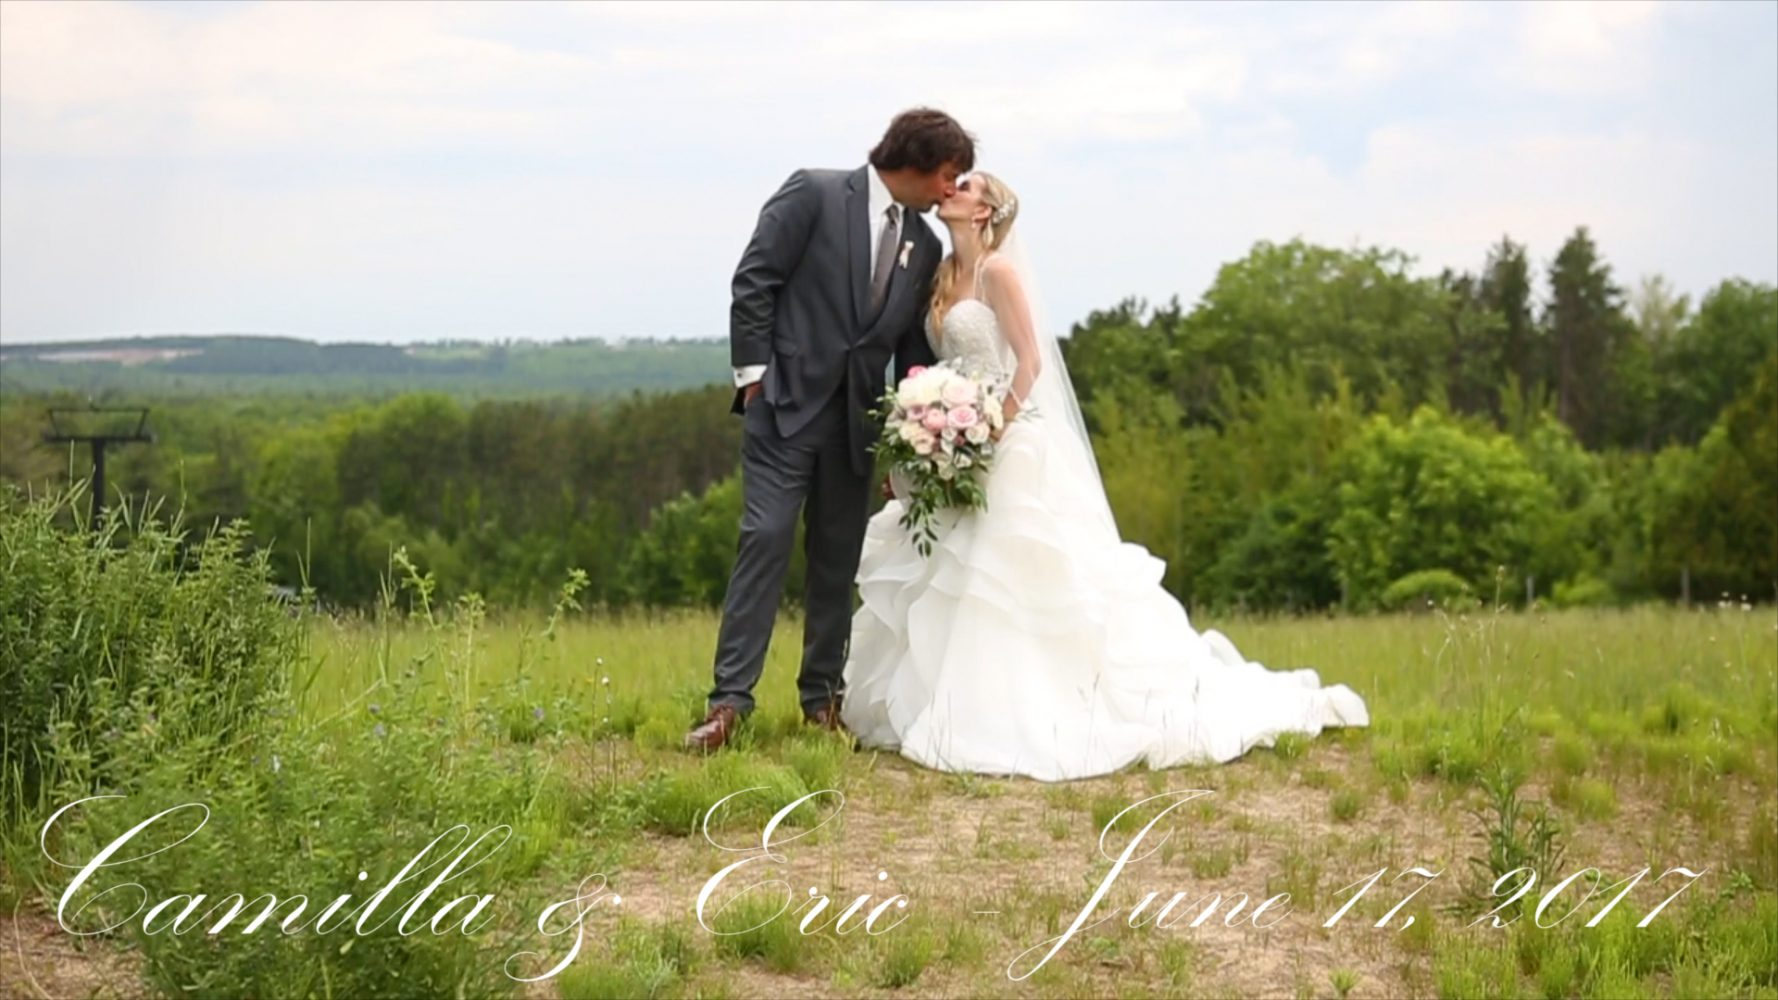 Camilla  + Eric | Barrie, Canada | The Heights Ski Resort & Venue